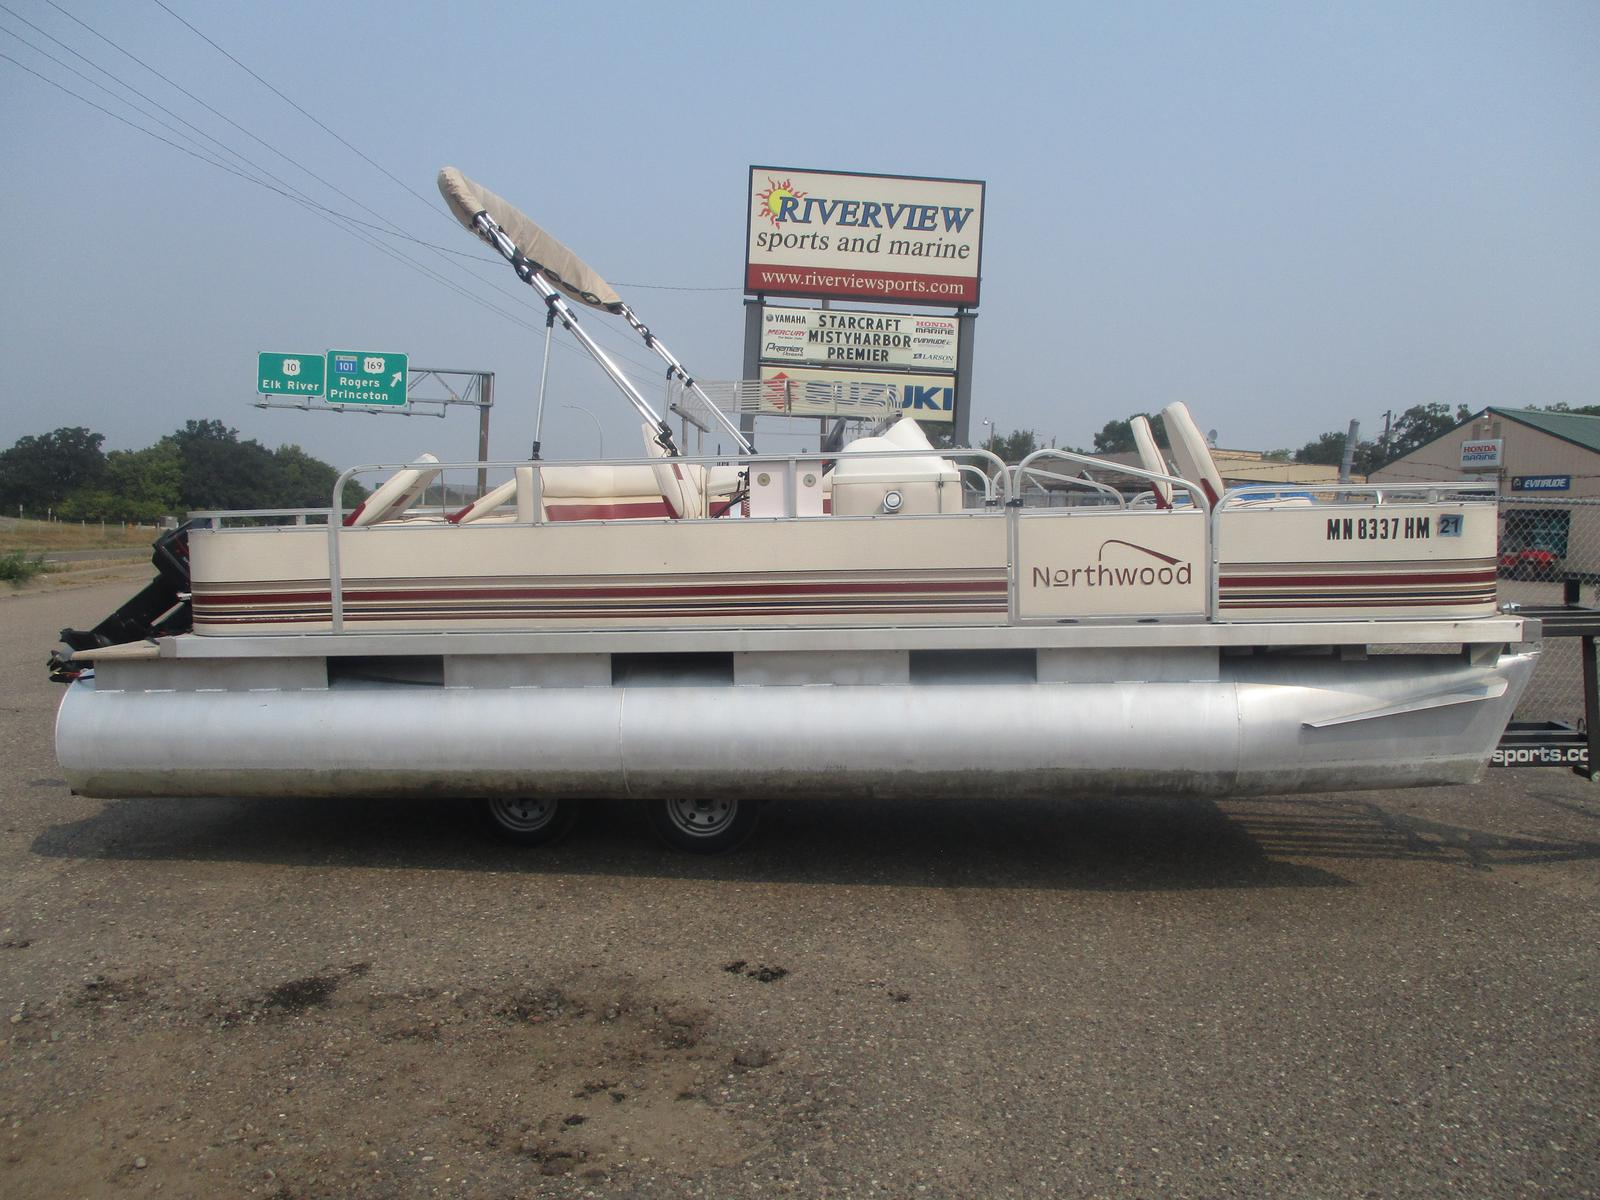 1998 NORTHWOODS 820 Sportster With A 28HP Evinrude Motor